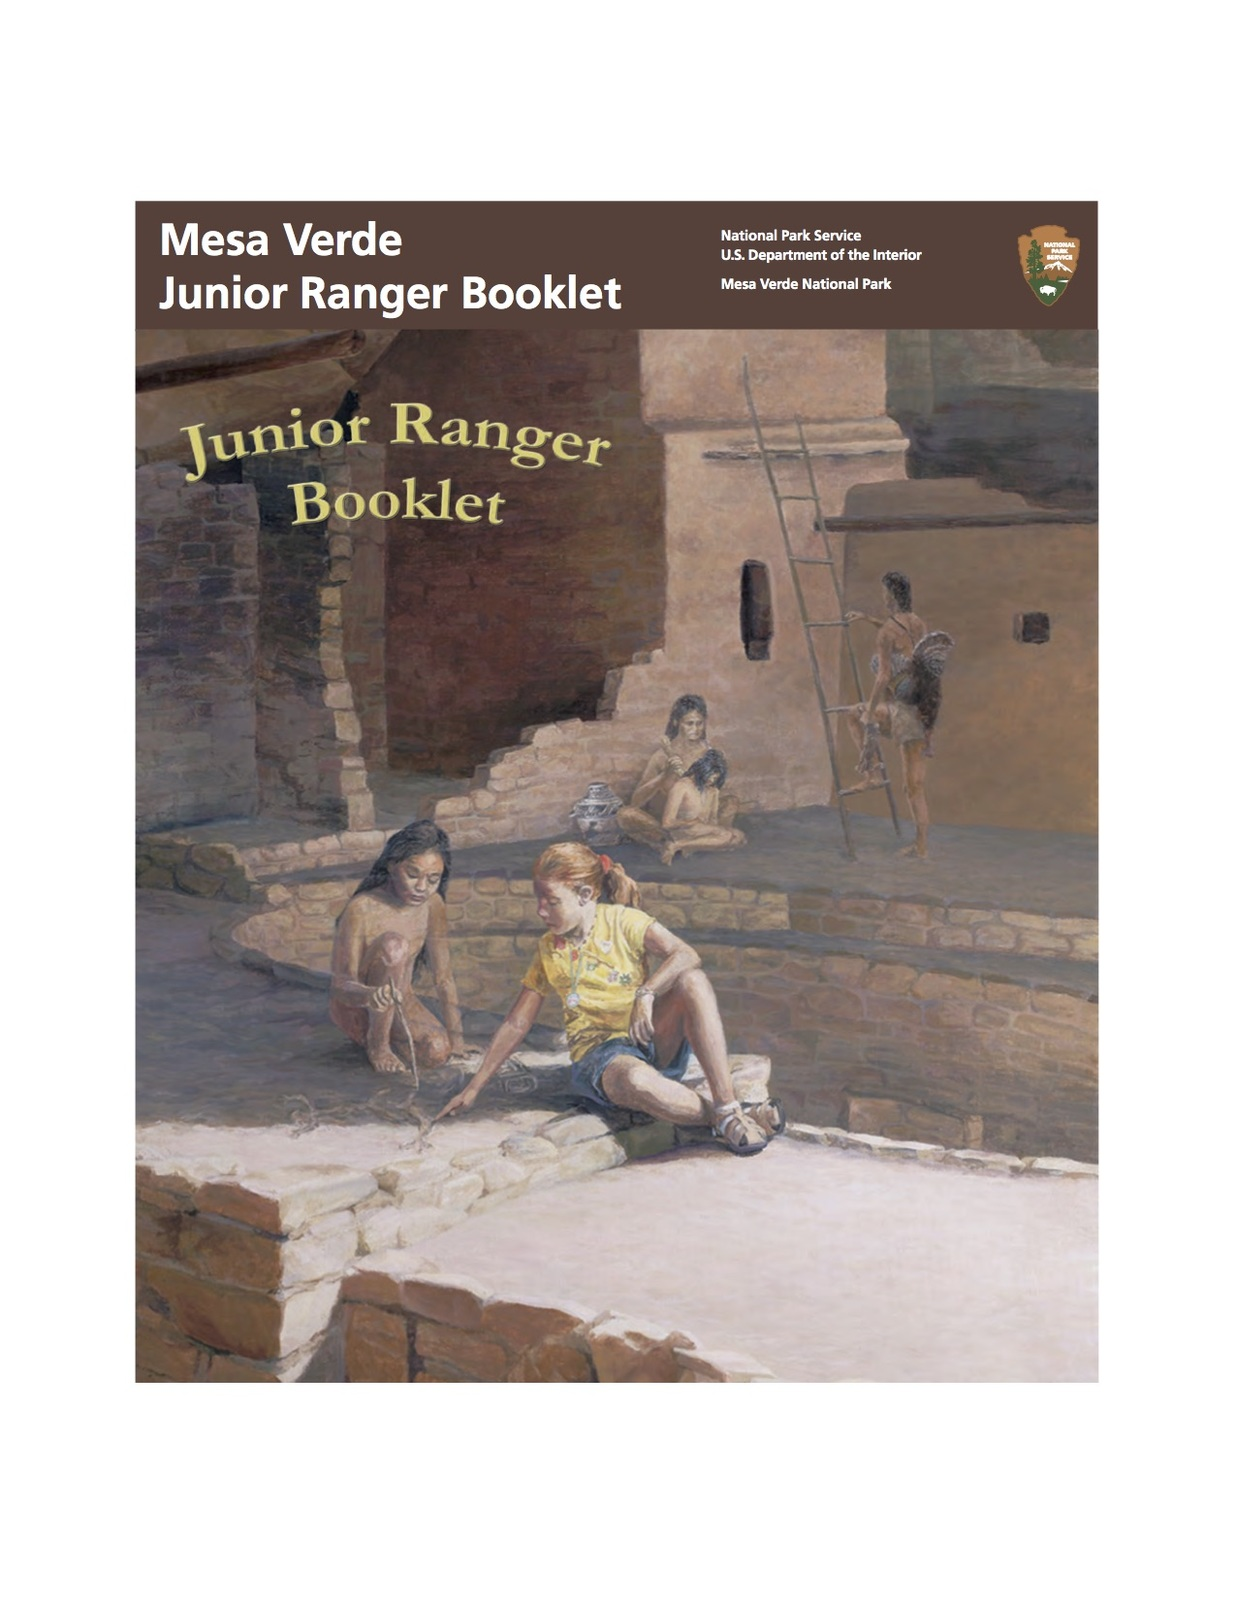 Junior Ranger Mesa Verde cover_visual culture.jpg